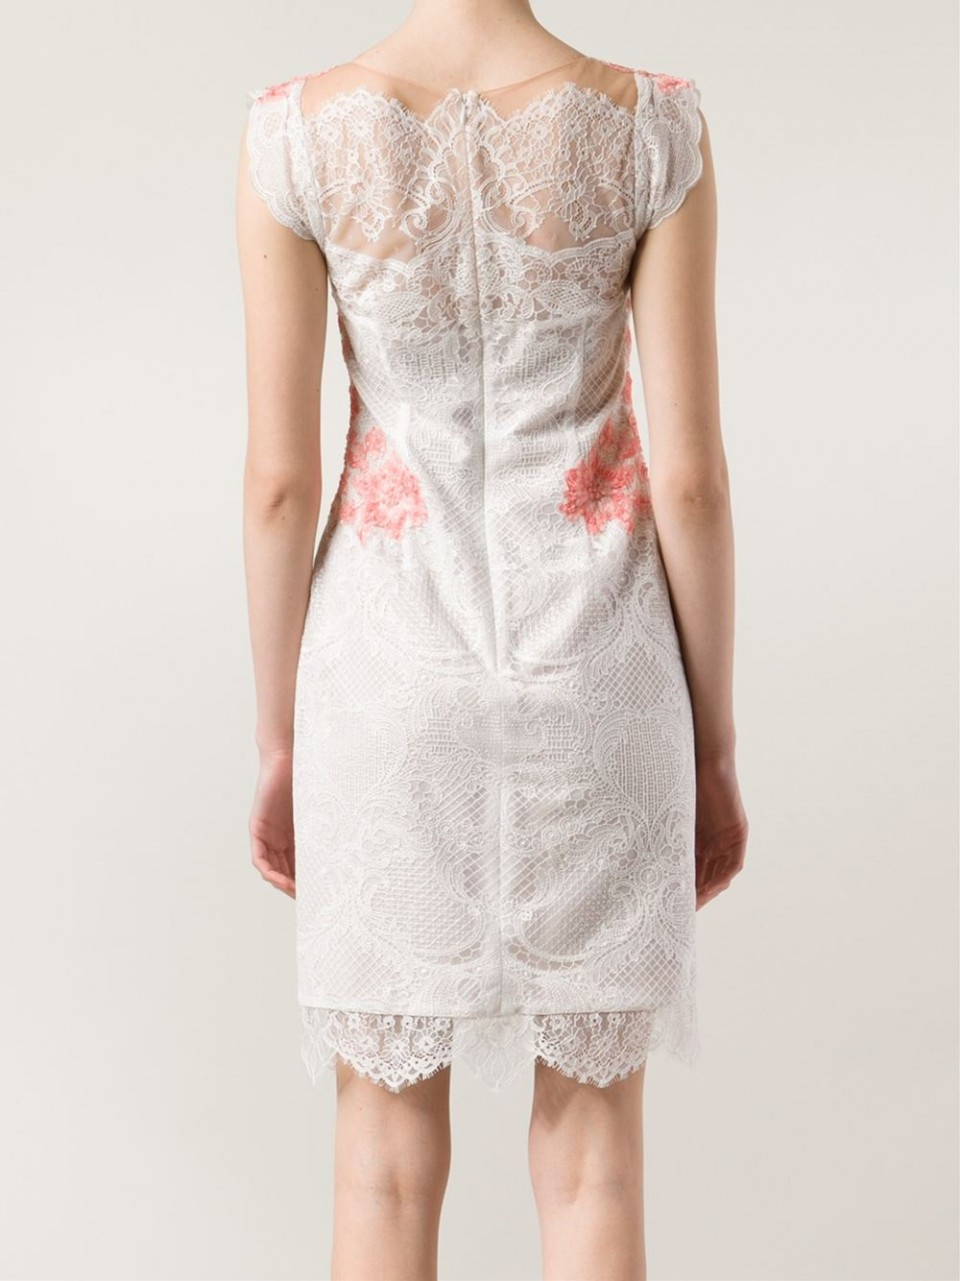 Lyst notte by marchesa embroidered lace detail dress in